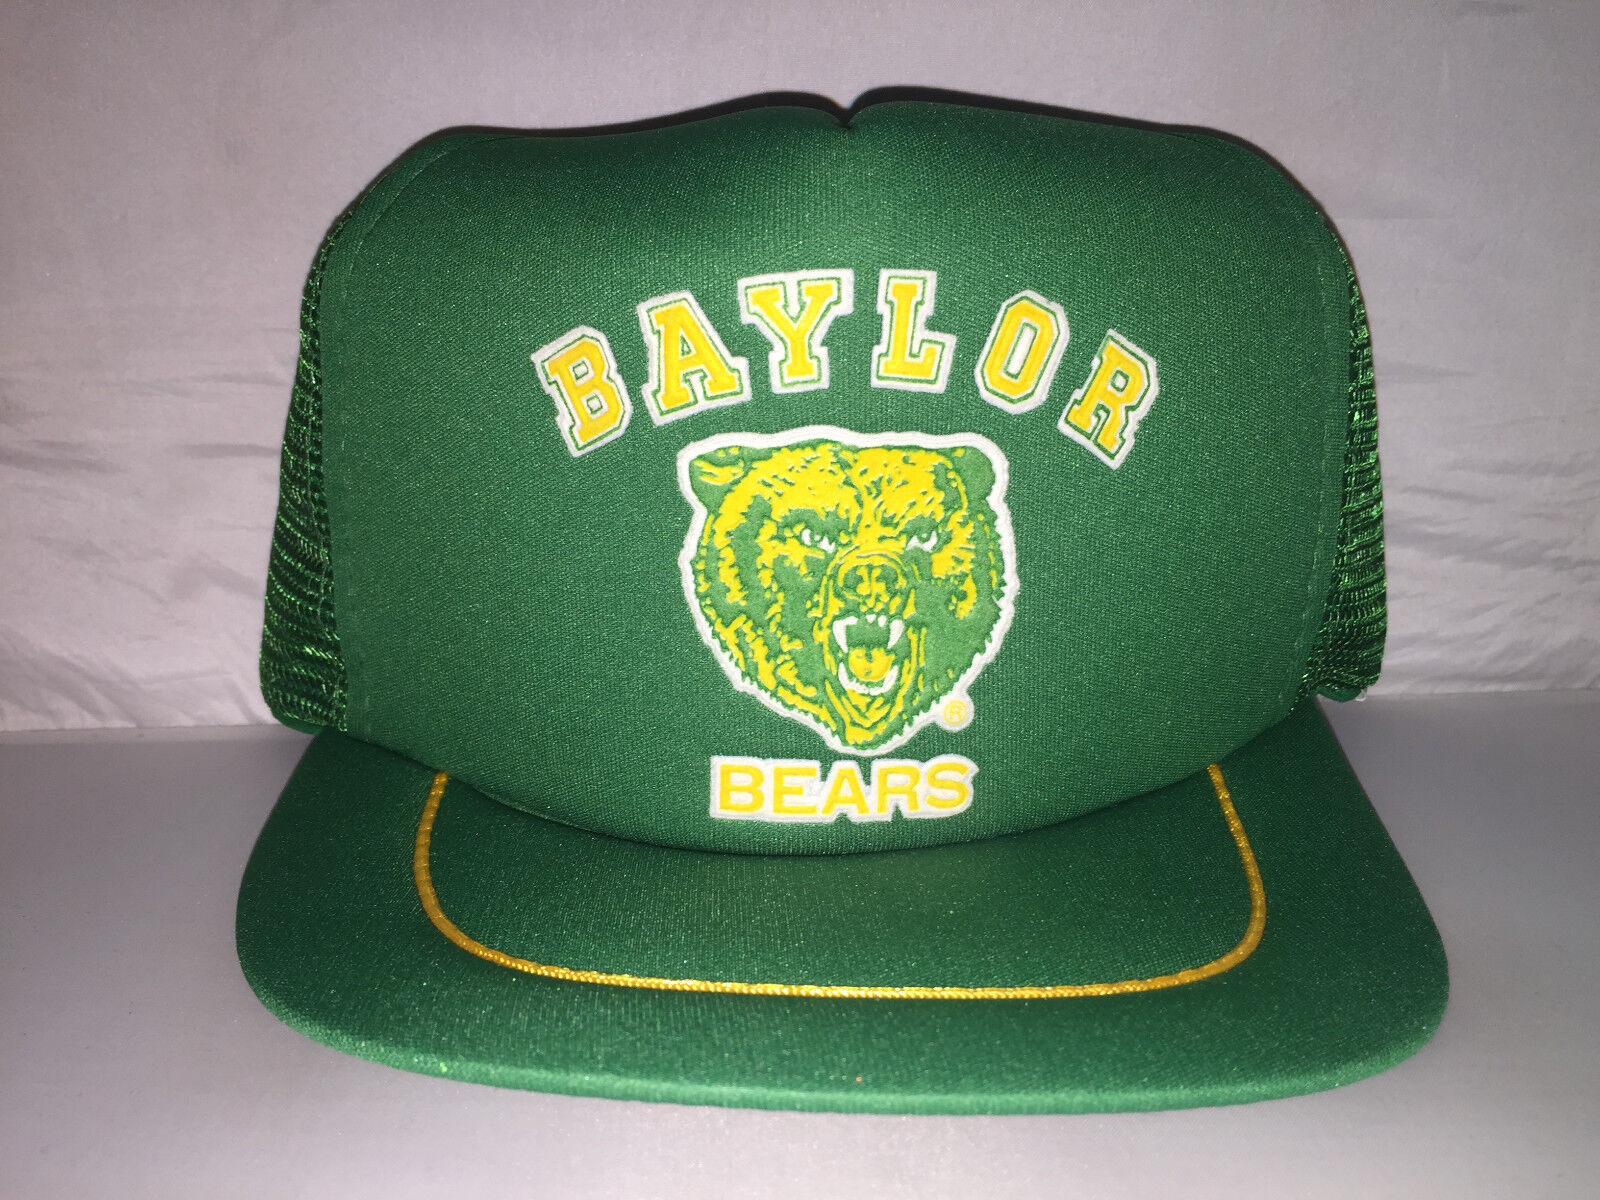 competitive price 815a7 8881f ... coupon code for vtg baylor bears snapback trucker hat cap rare 90s  trucker snapback texas ncaa